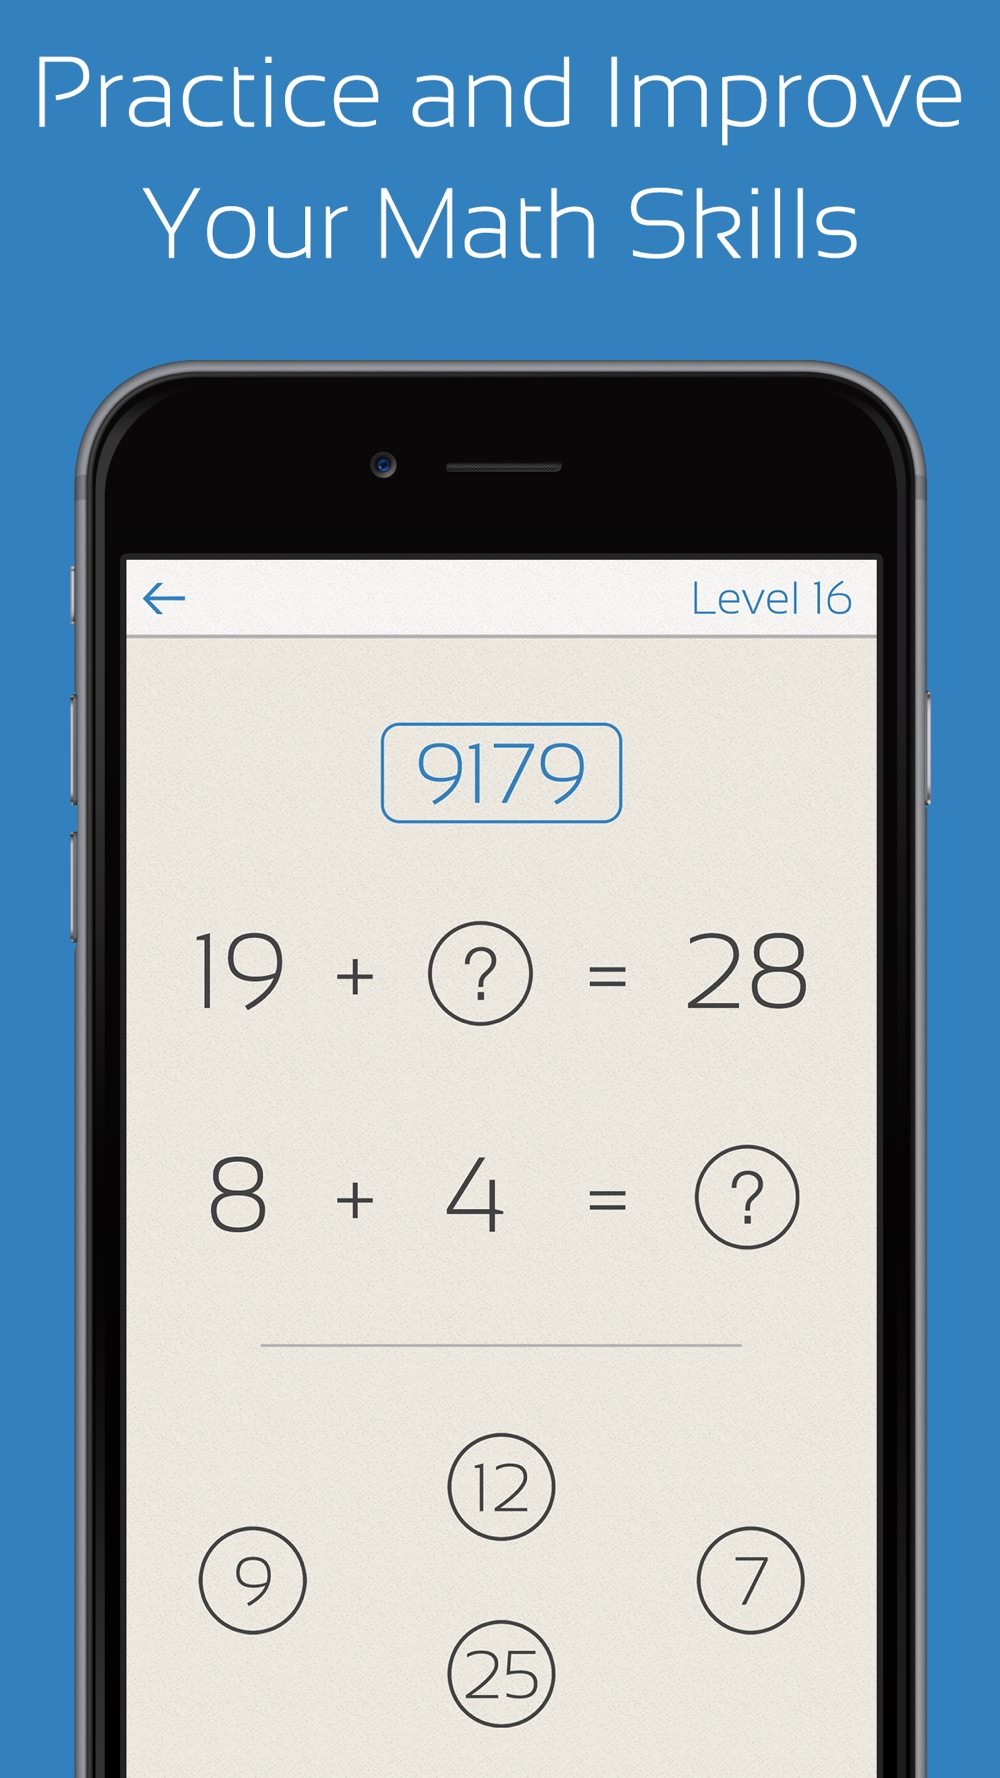 Pure Math – Practice and Improve Your Math Skills (Addition, Subtraction, Multiplication and Division) cheat codes